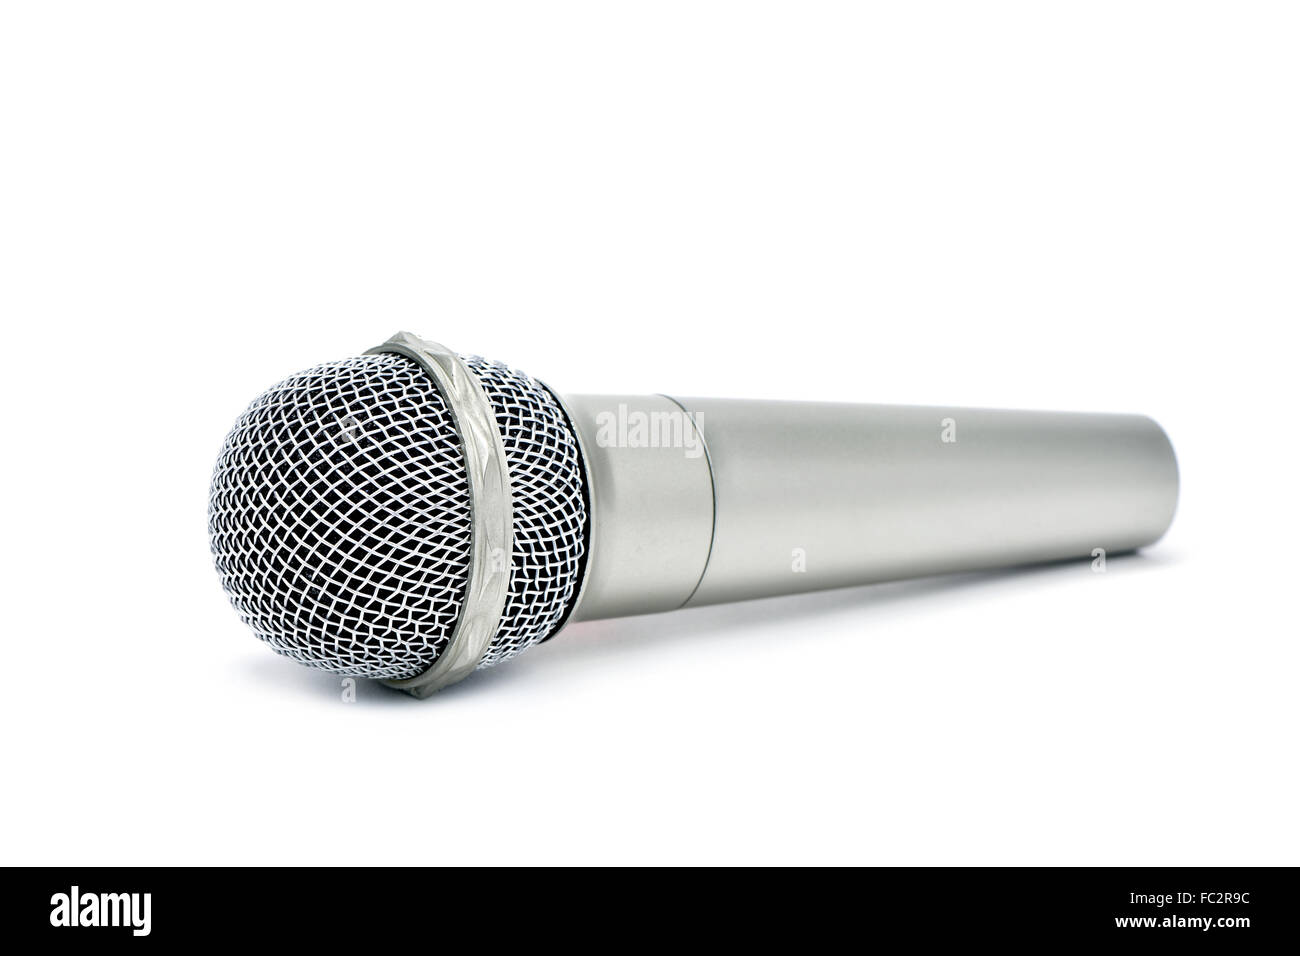 a wireless microphone on a white background - Stock Image